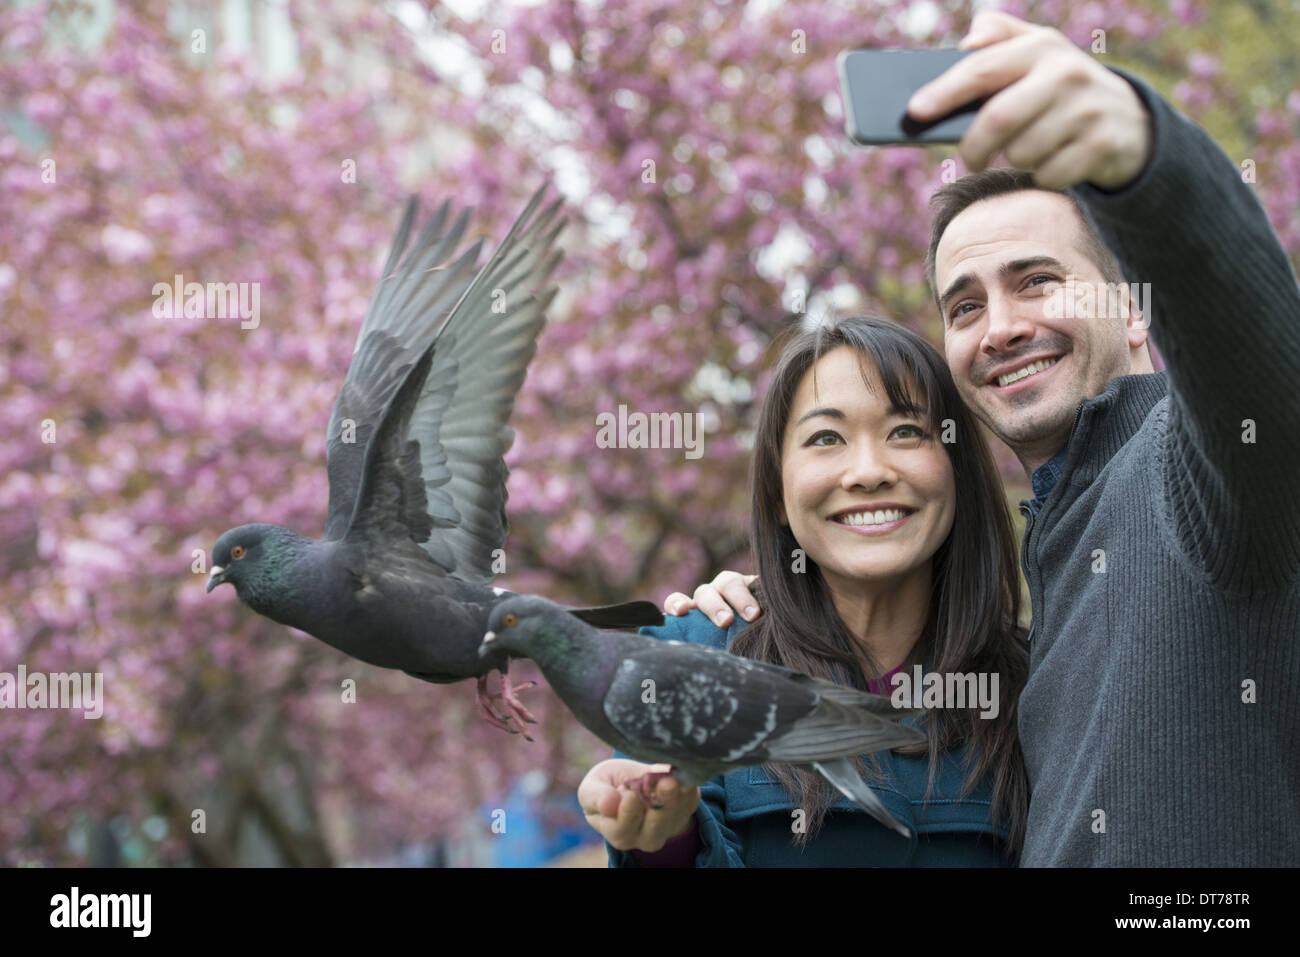 A couple, a man and woman, in the park, taking a selfy, self portrait with a mobile phone. Two pigeons perched on her wrist. - Stock Image